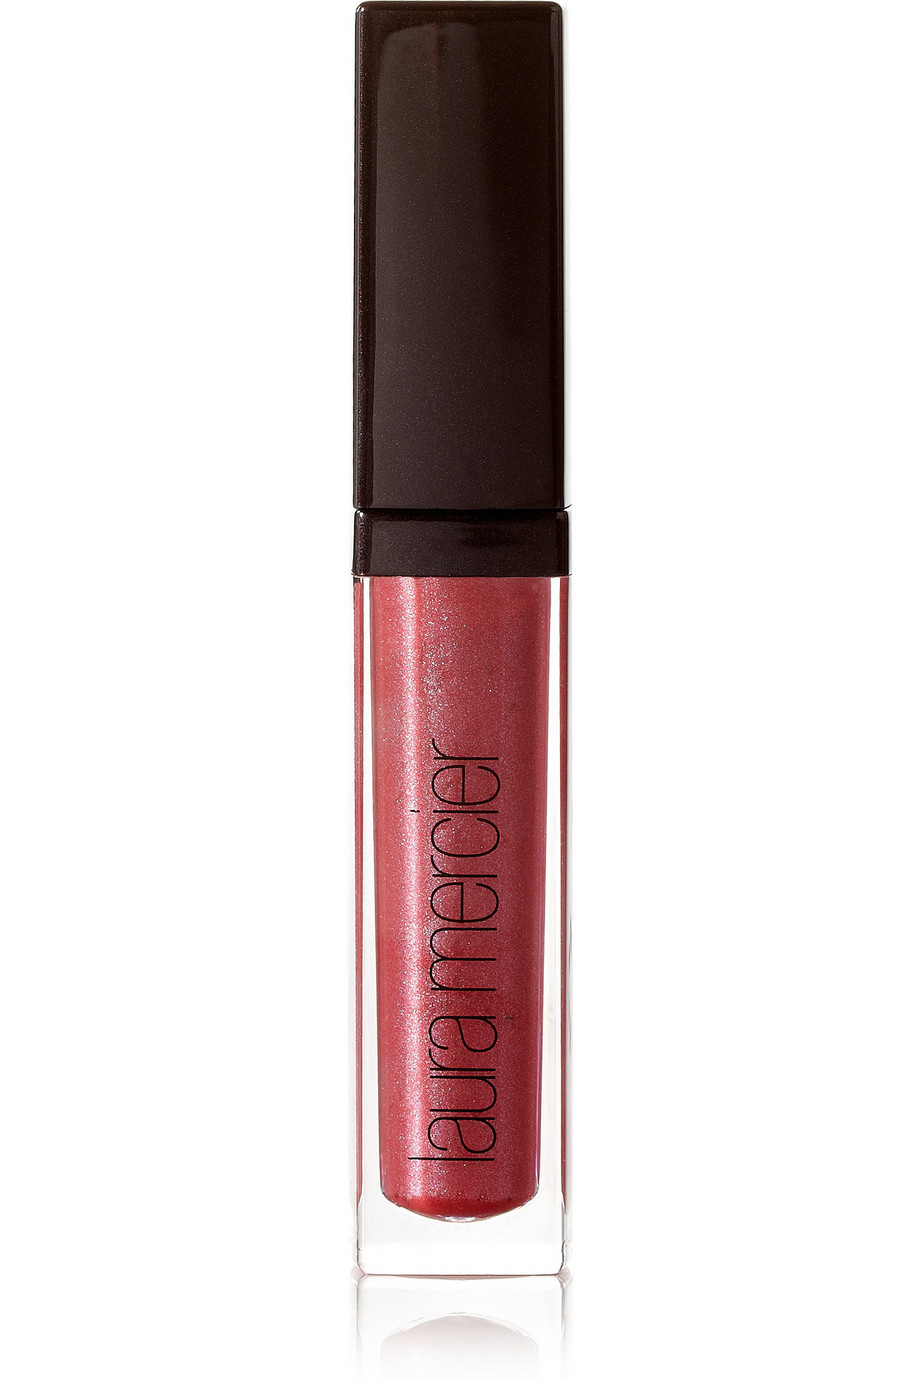 Laura Mercier Lip Glacé - Rose